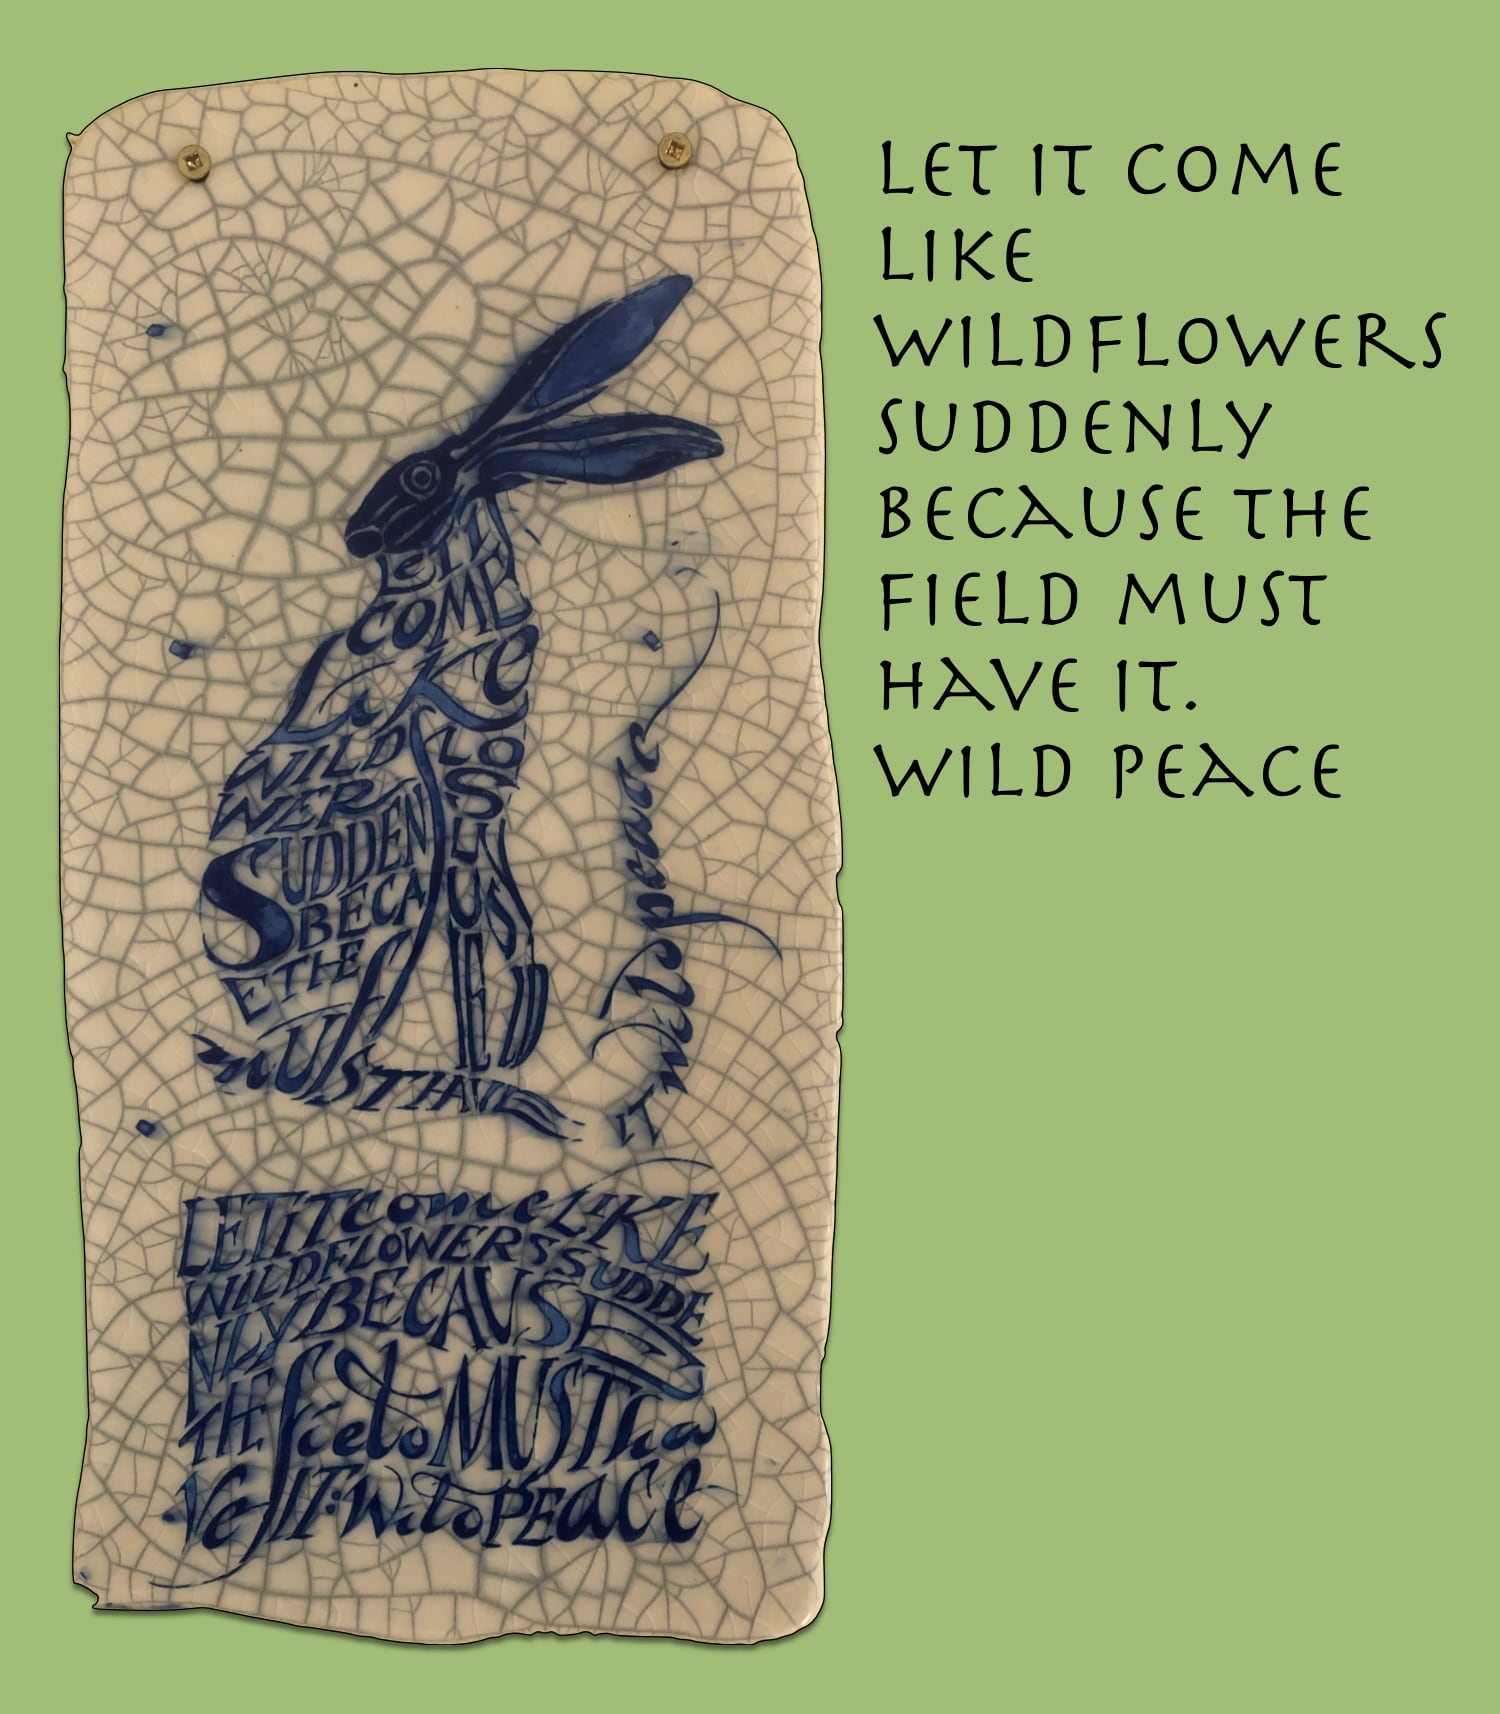 Easter Hare – Wild Peace